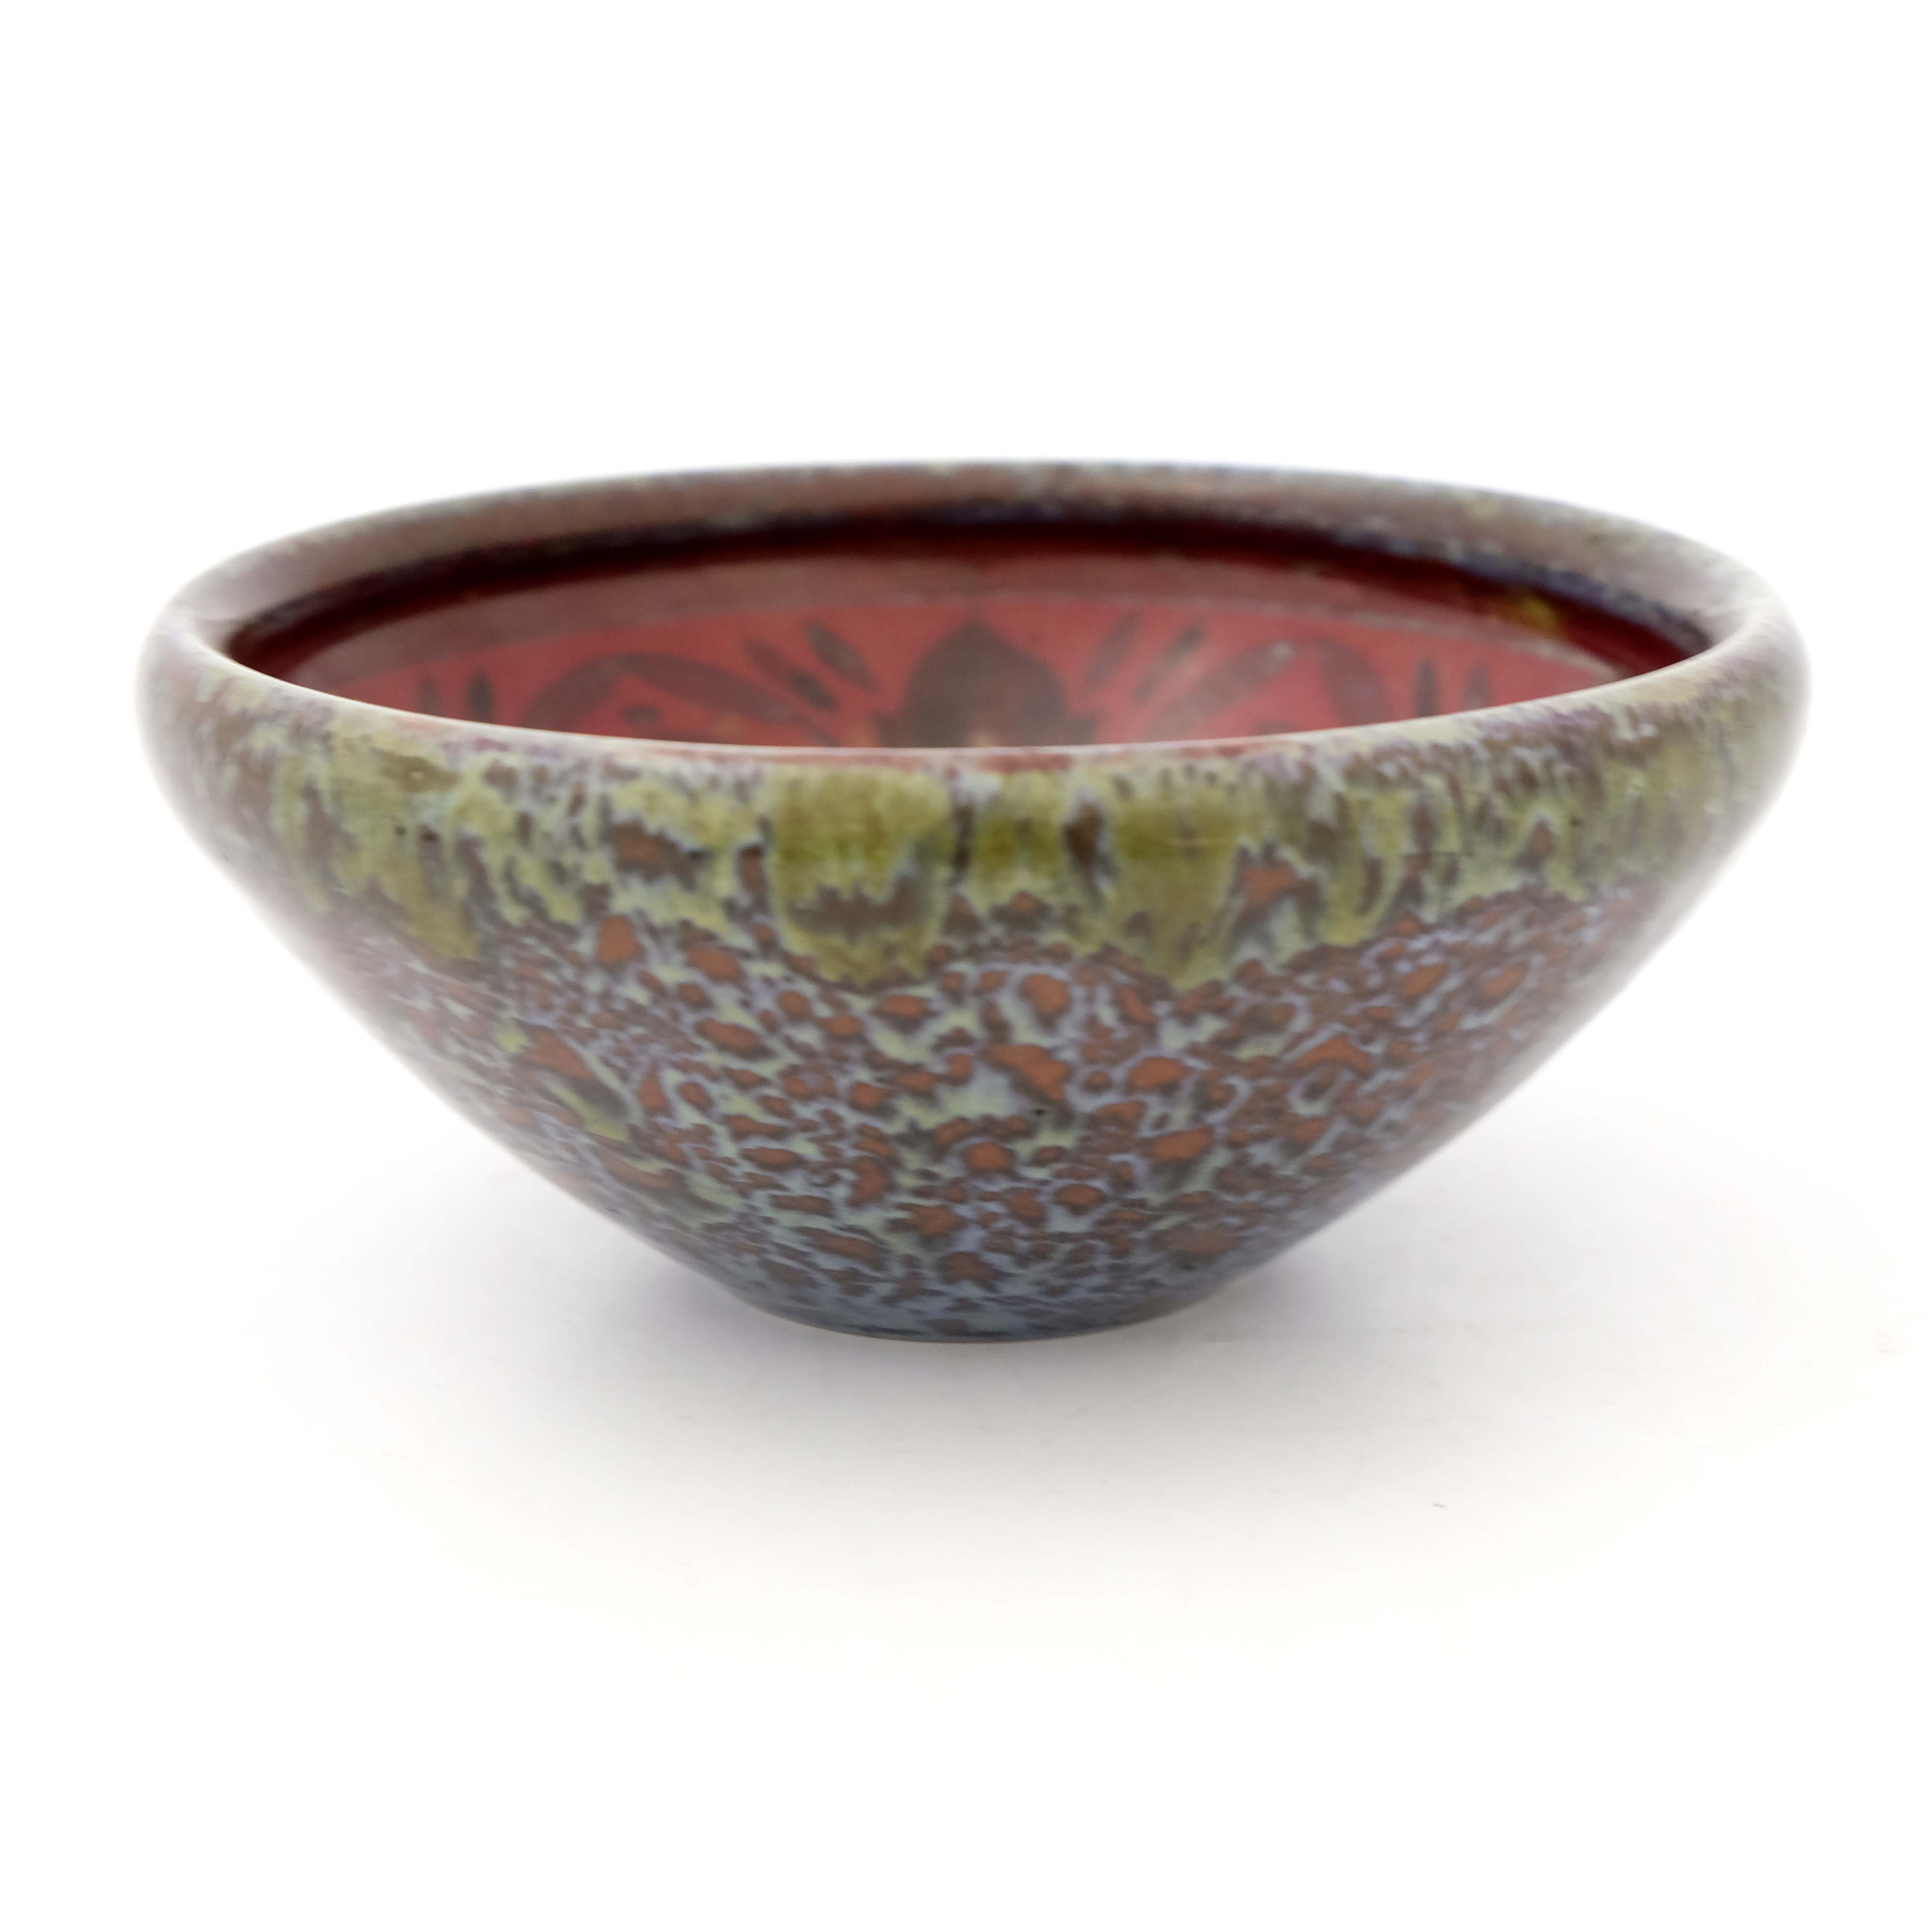 Charles Noke for Royal Doulton, a Sung Flambe bowl - Image 2 of 5